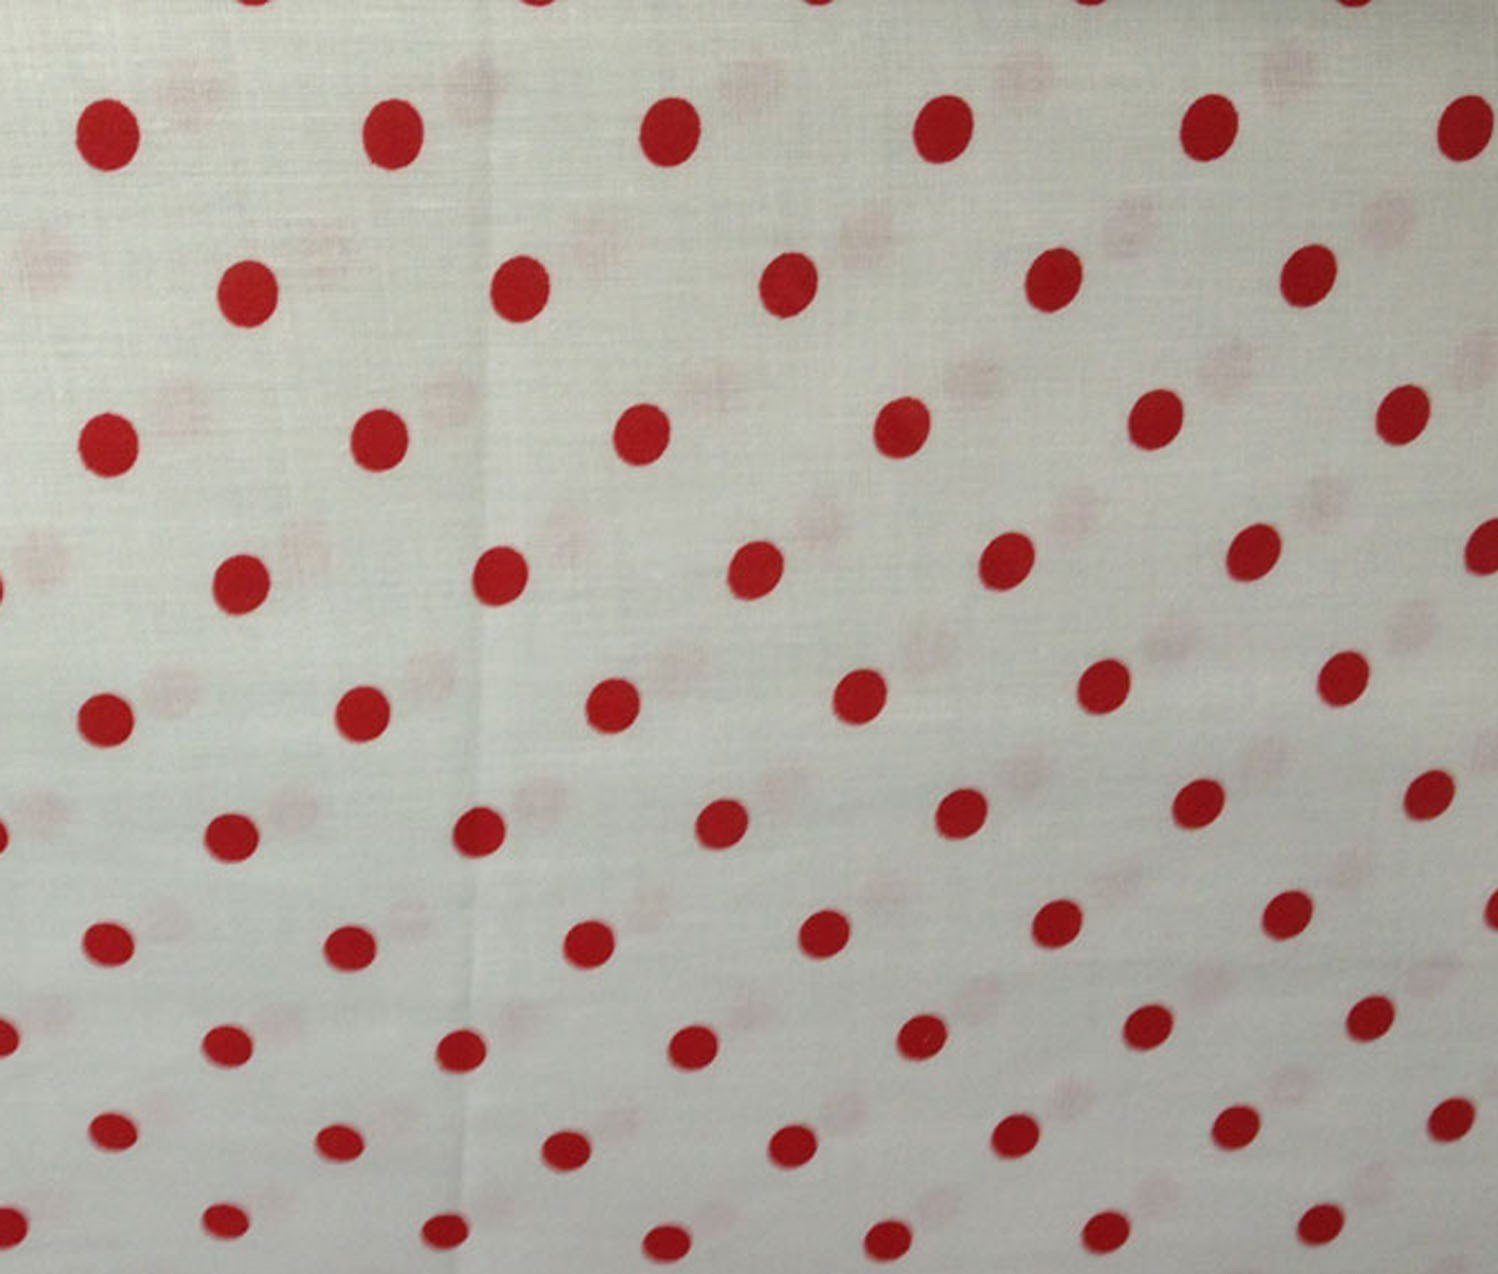 Small Polka Dot Poly Cotton Red Dots on White 58 Inch Fabric By the Yard (F.E.つ) by The Fabric Exchange   B00J3B5DFO